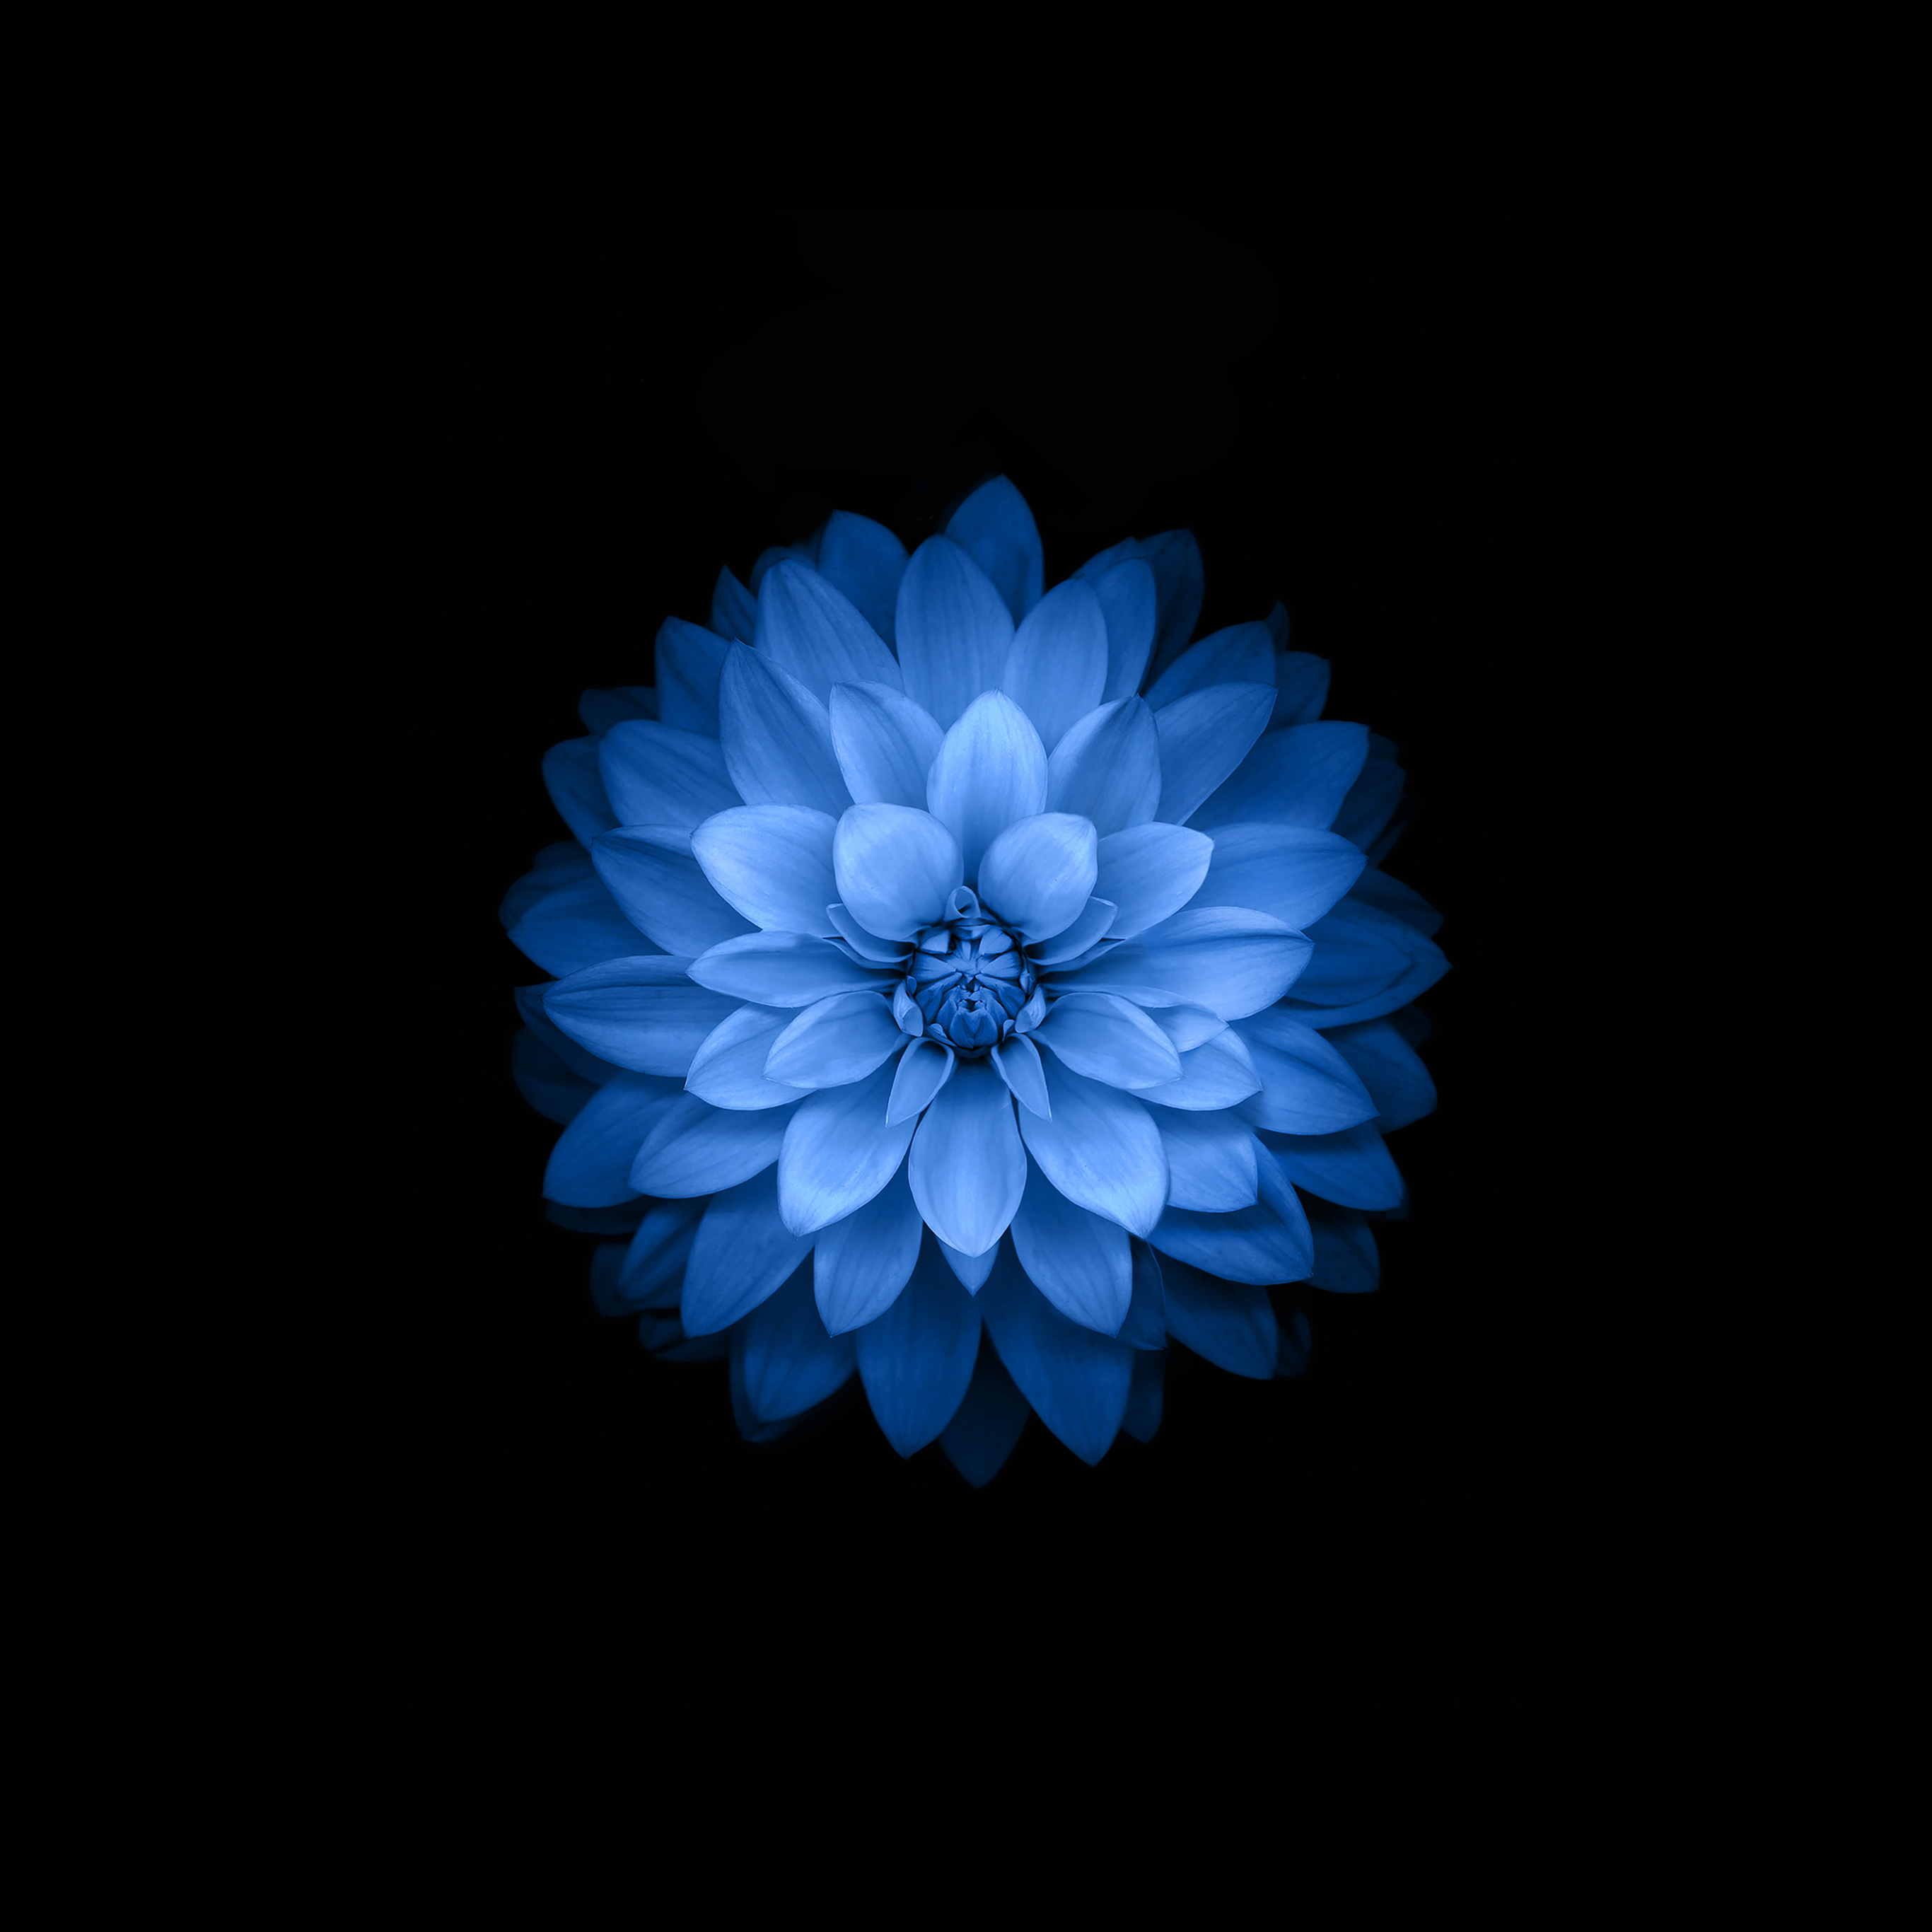 ac99-wallpaper-apple-blue-lotus-iphone6-plus-ios8-flower-wallpaper